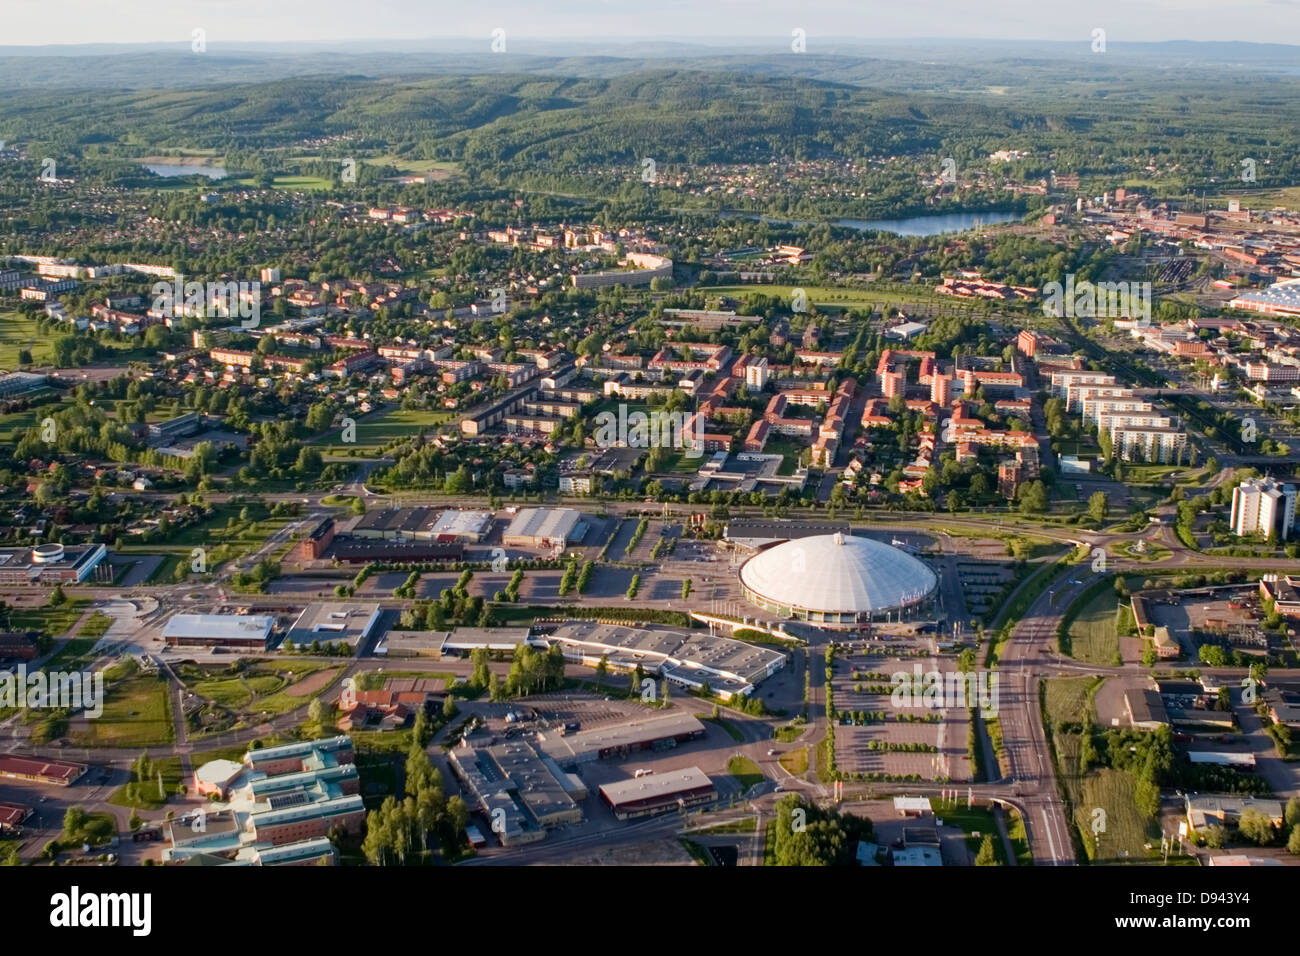 Aerial view of a city, Borlange, Sweden. - Stock Image